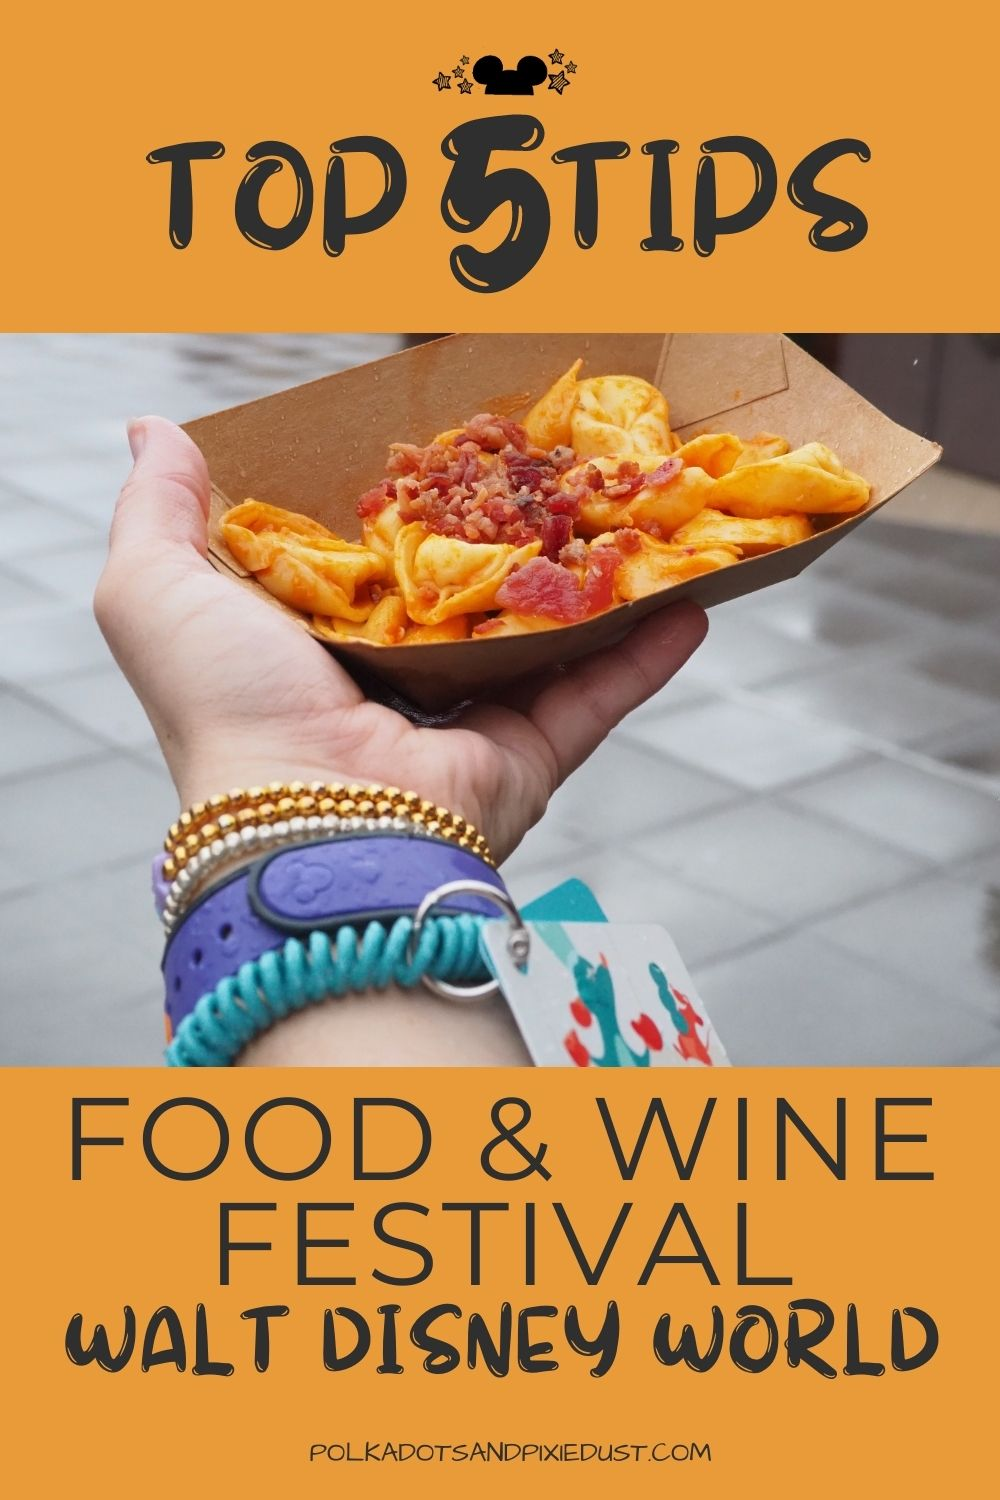 Top 5 Tips for Disney's Food and Wine Festival at Walt Disney World